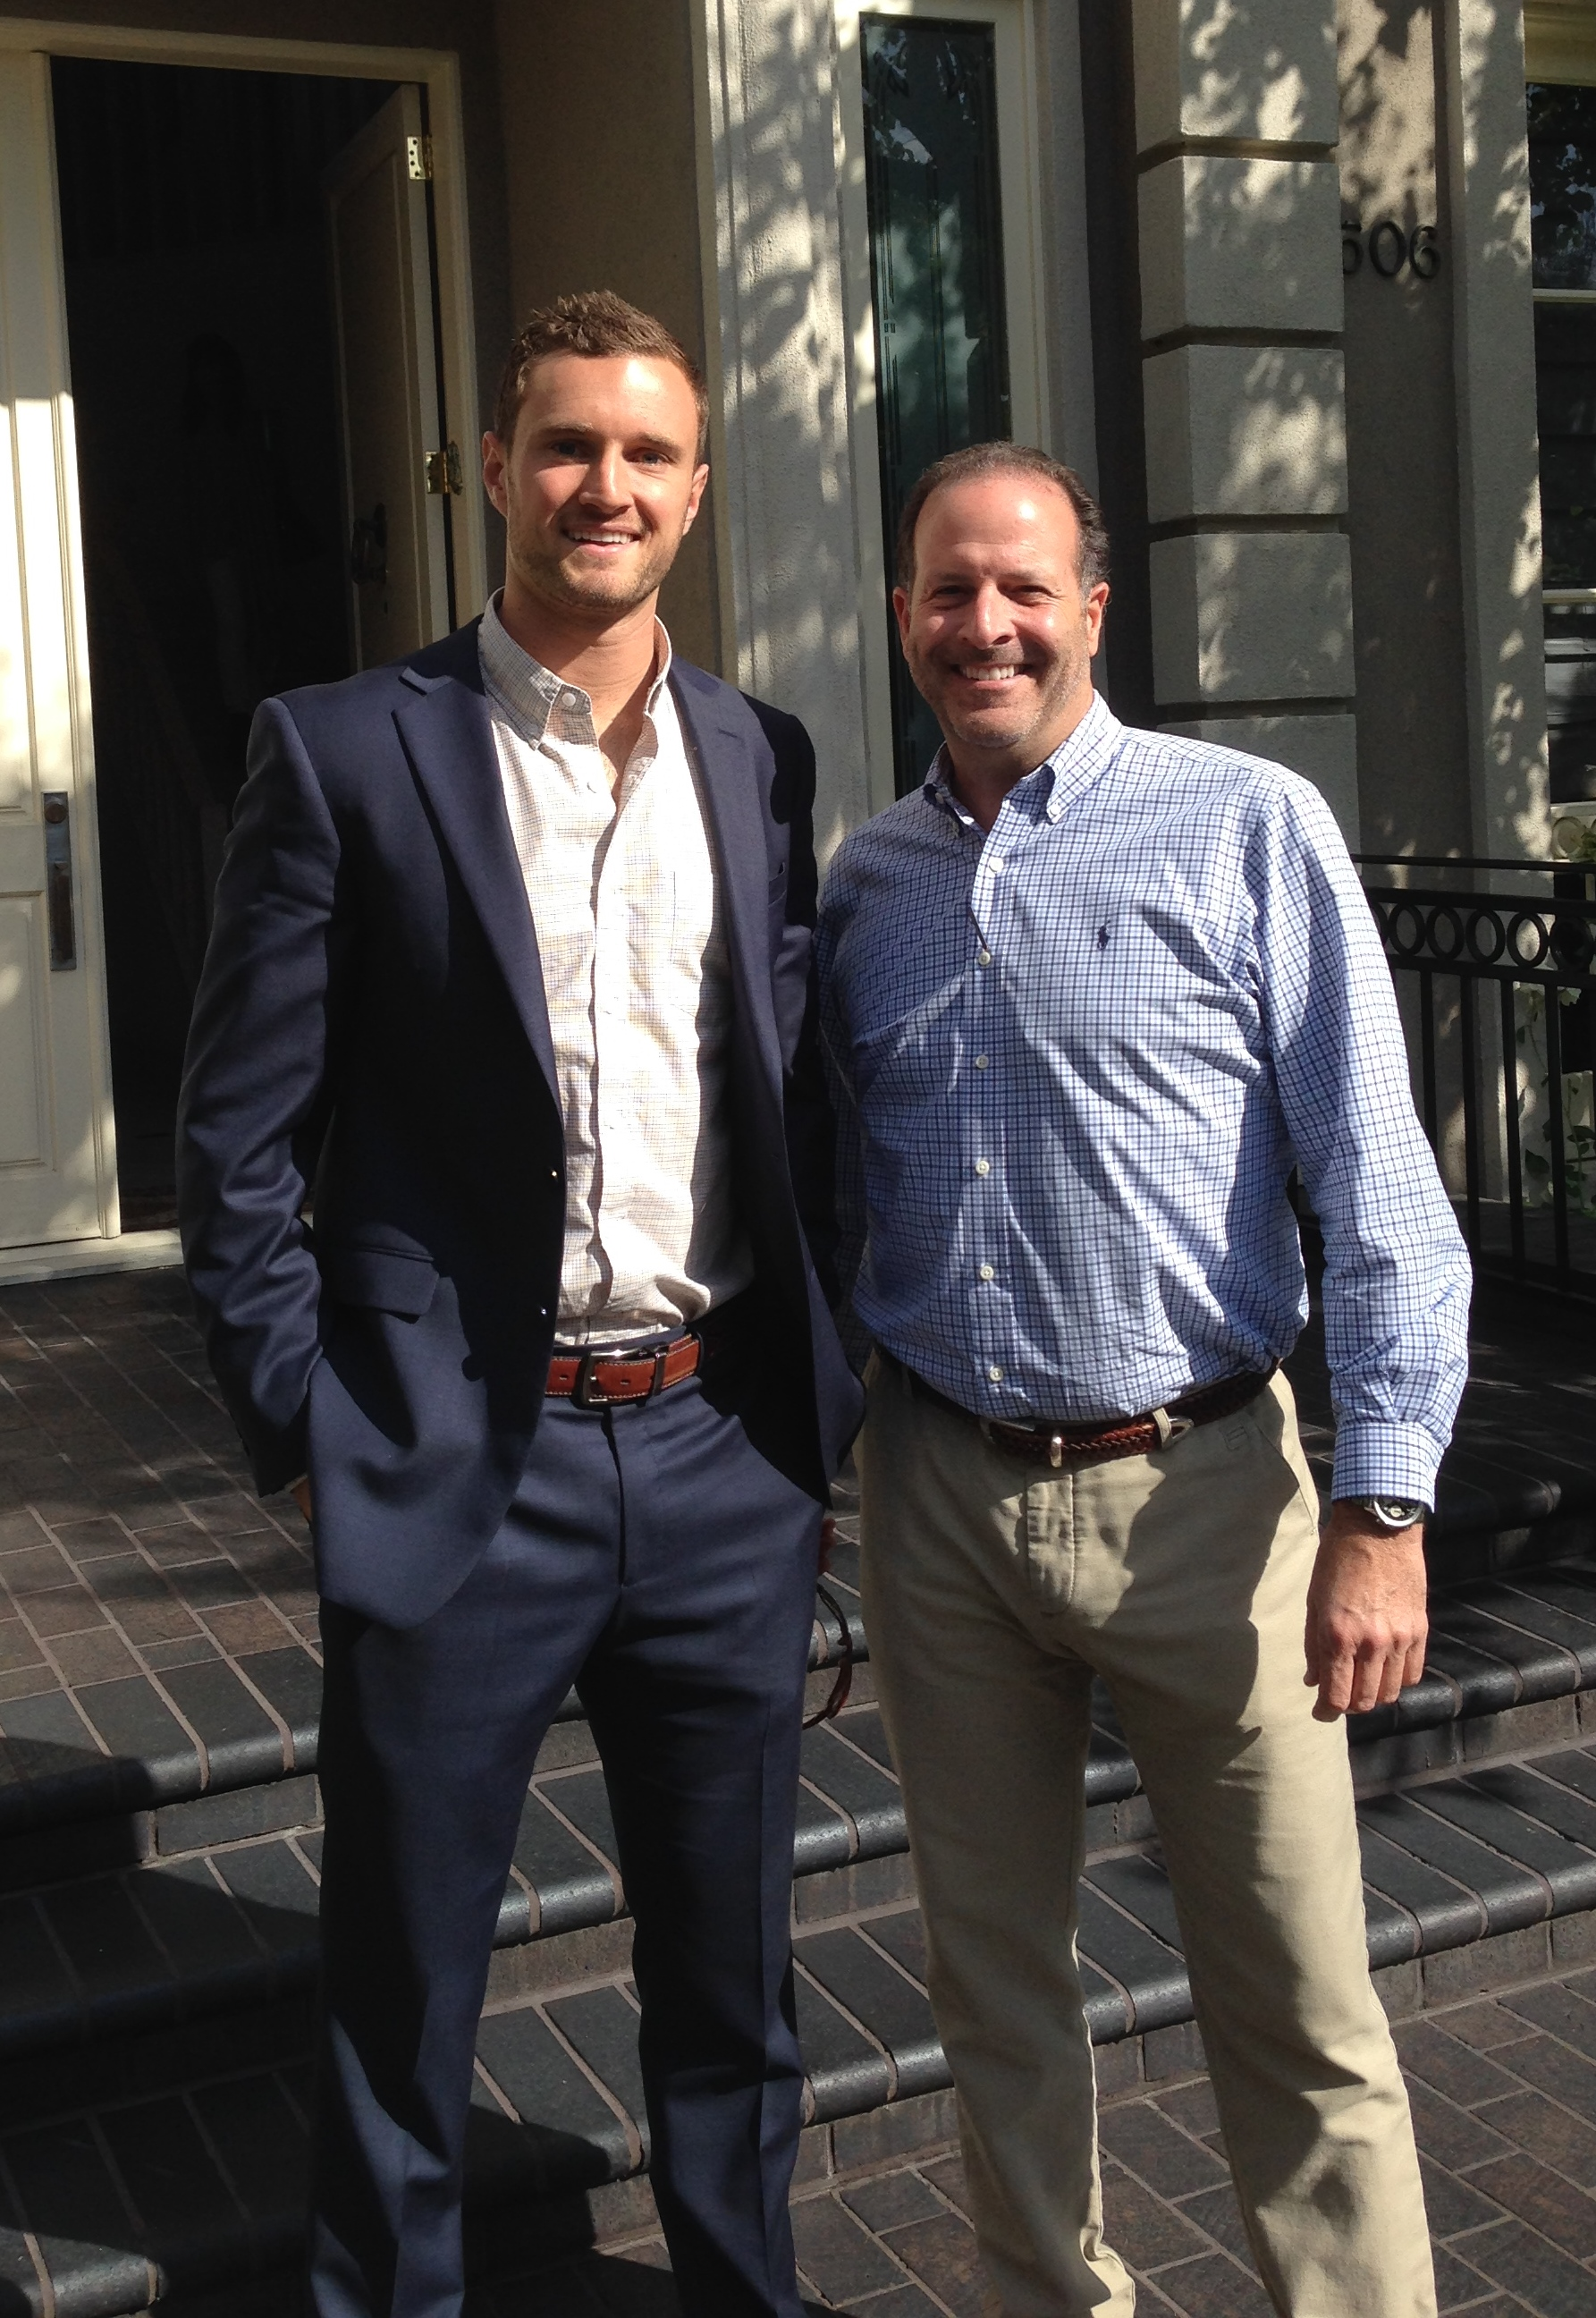 Me and Steve previewing luxury properties in Beverly HIlls, CA.